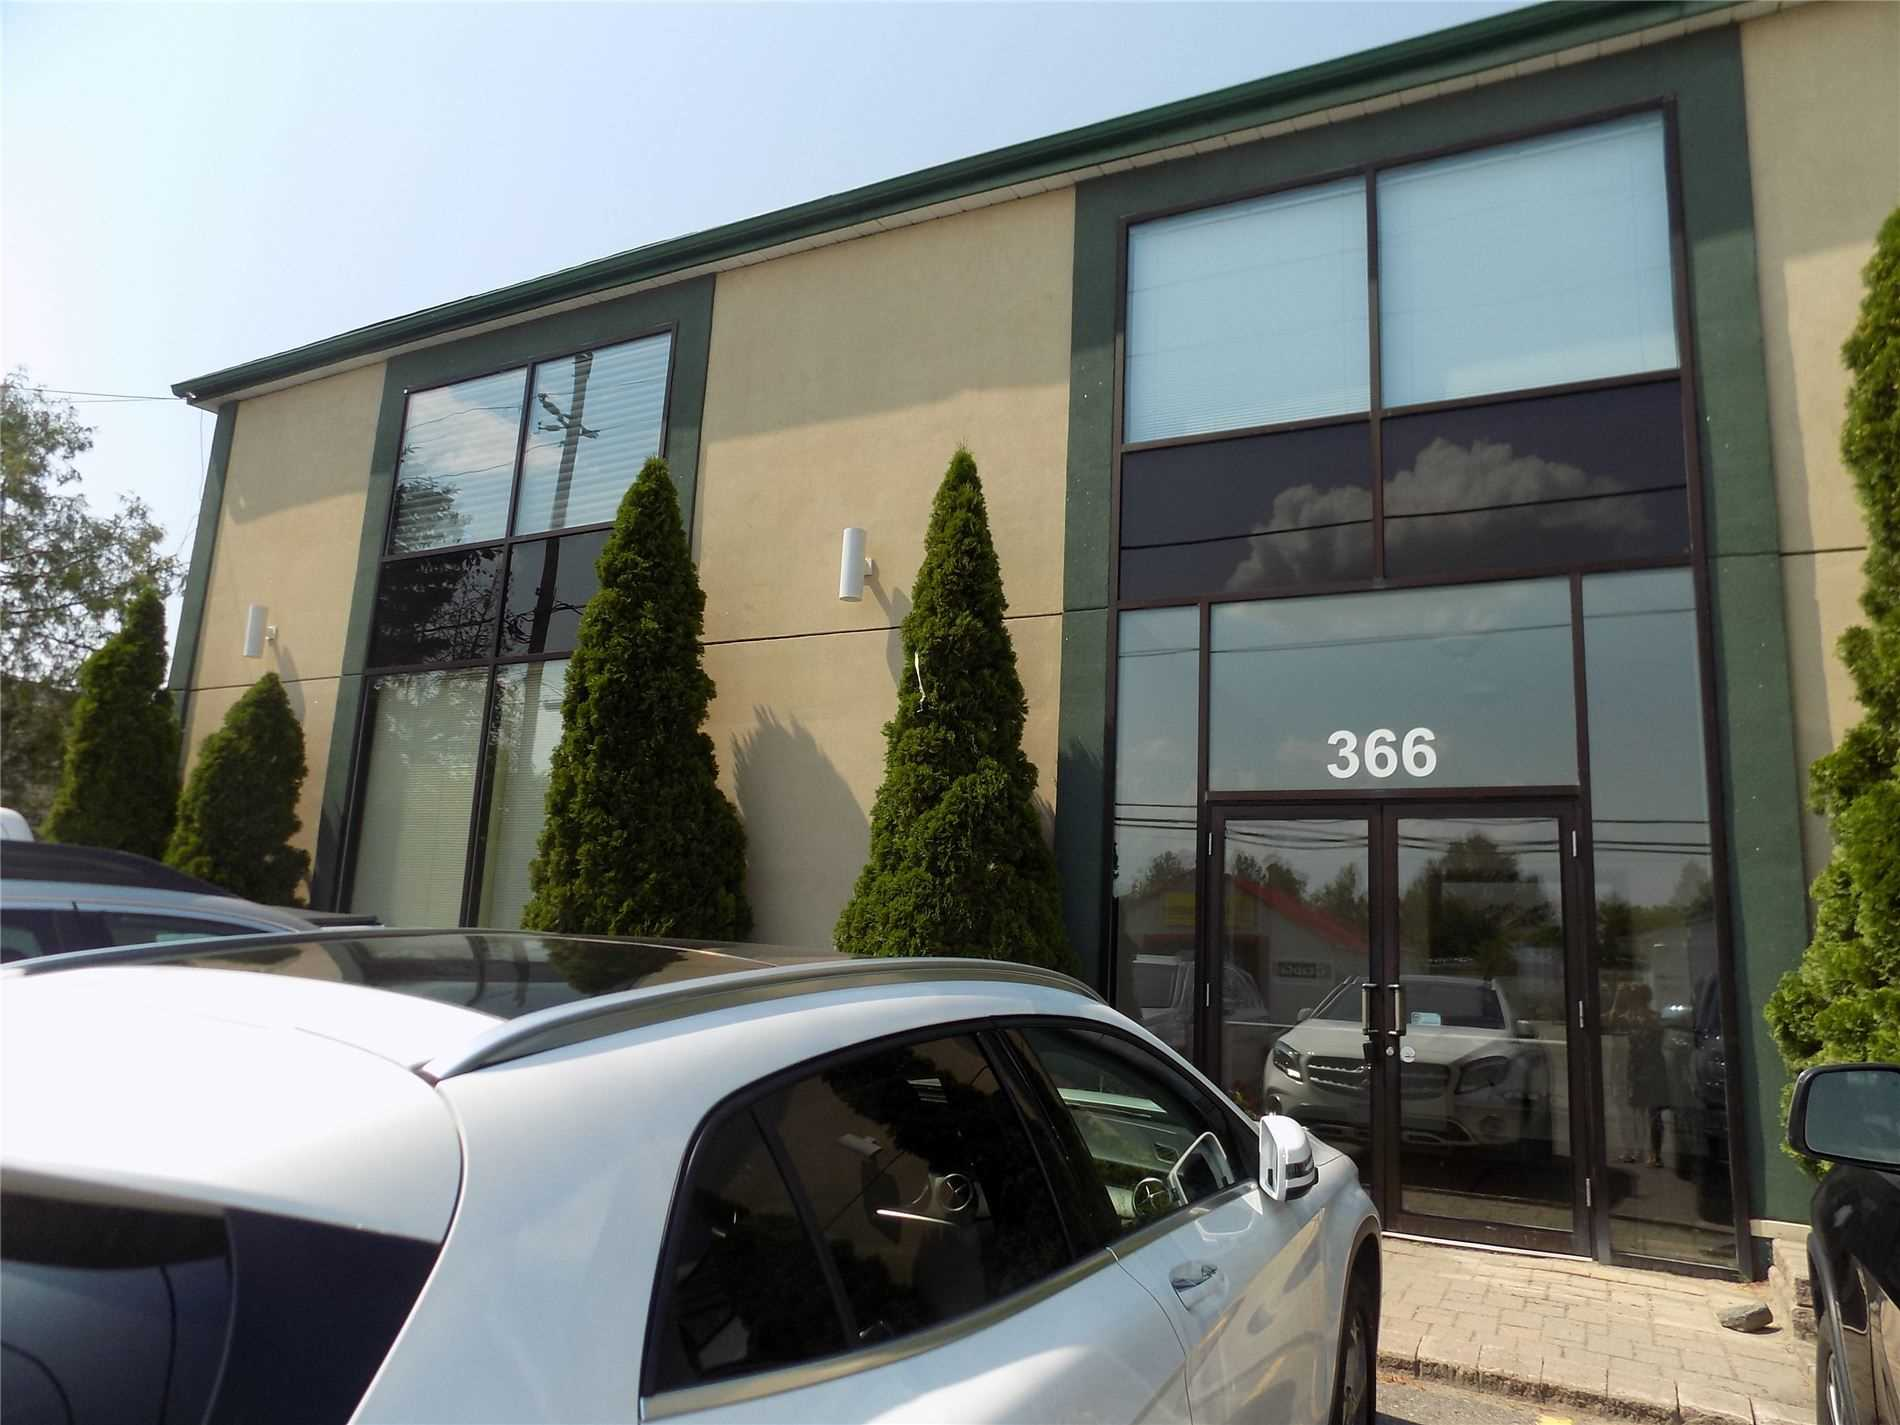 Commercial/retail For Sale In Douro-Dummer , ,Commercial/retail,For Sale,Parkhill